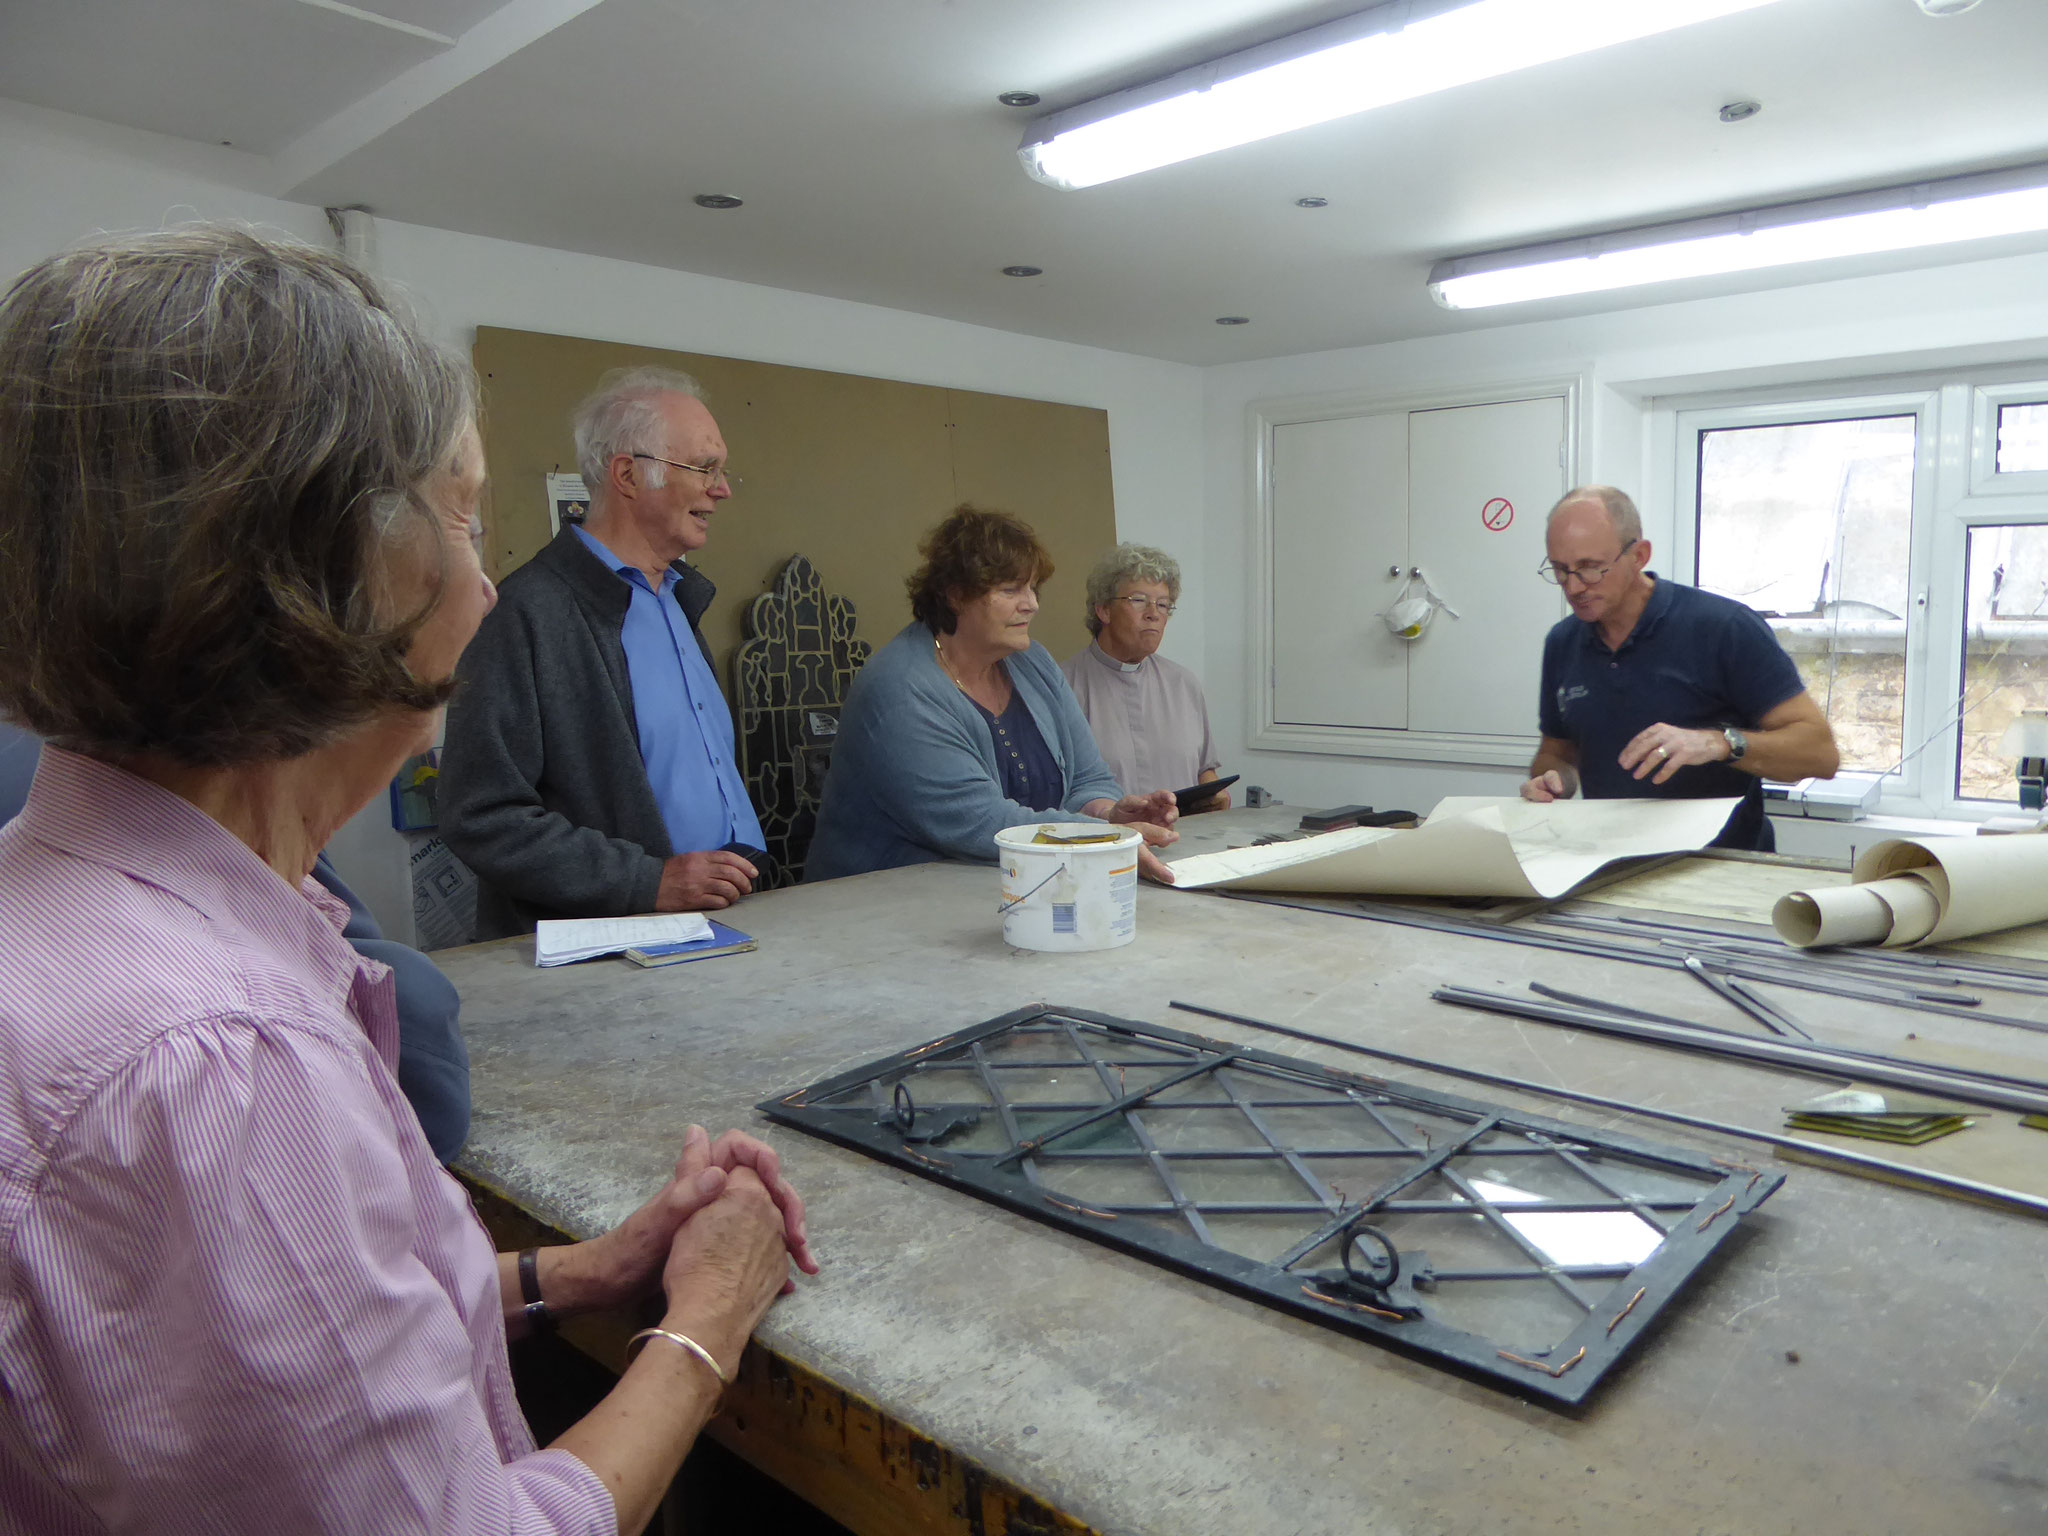 A group from the Village visits Heritage Glass to see renovation in progress